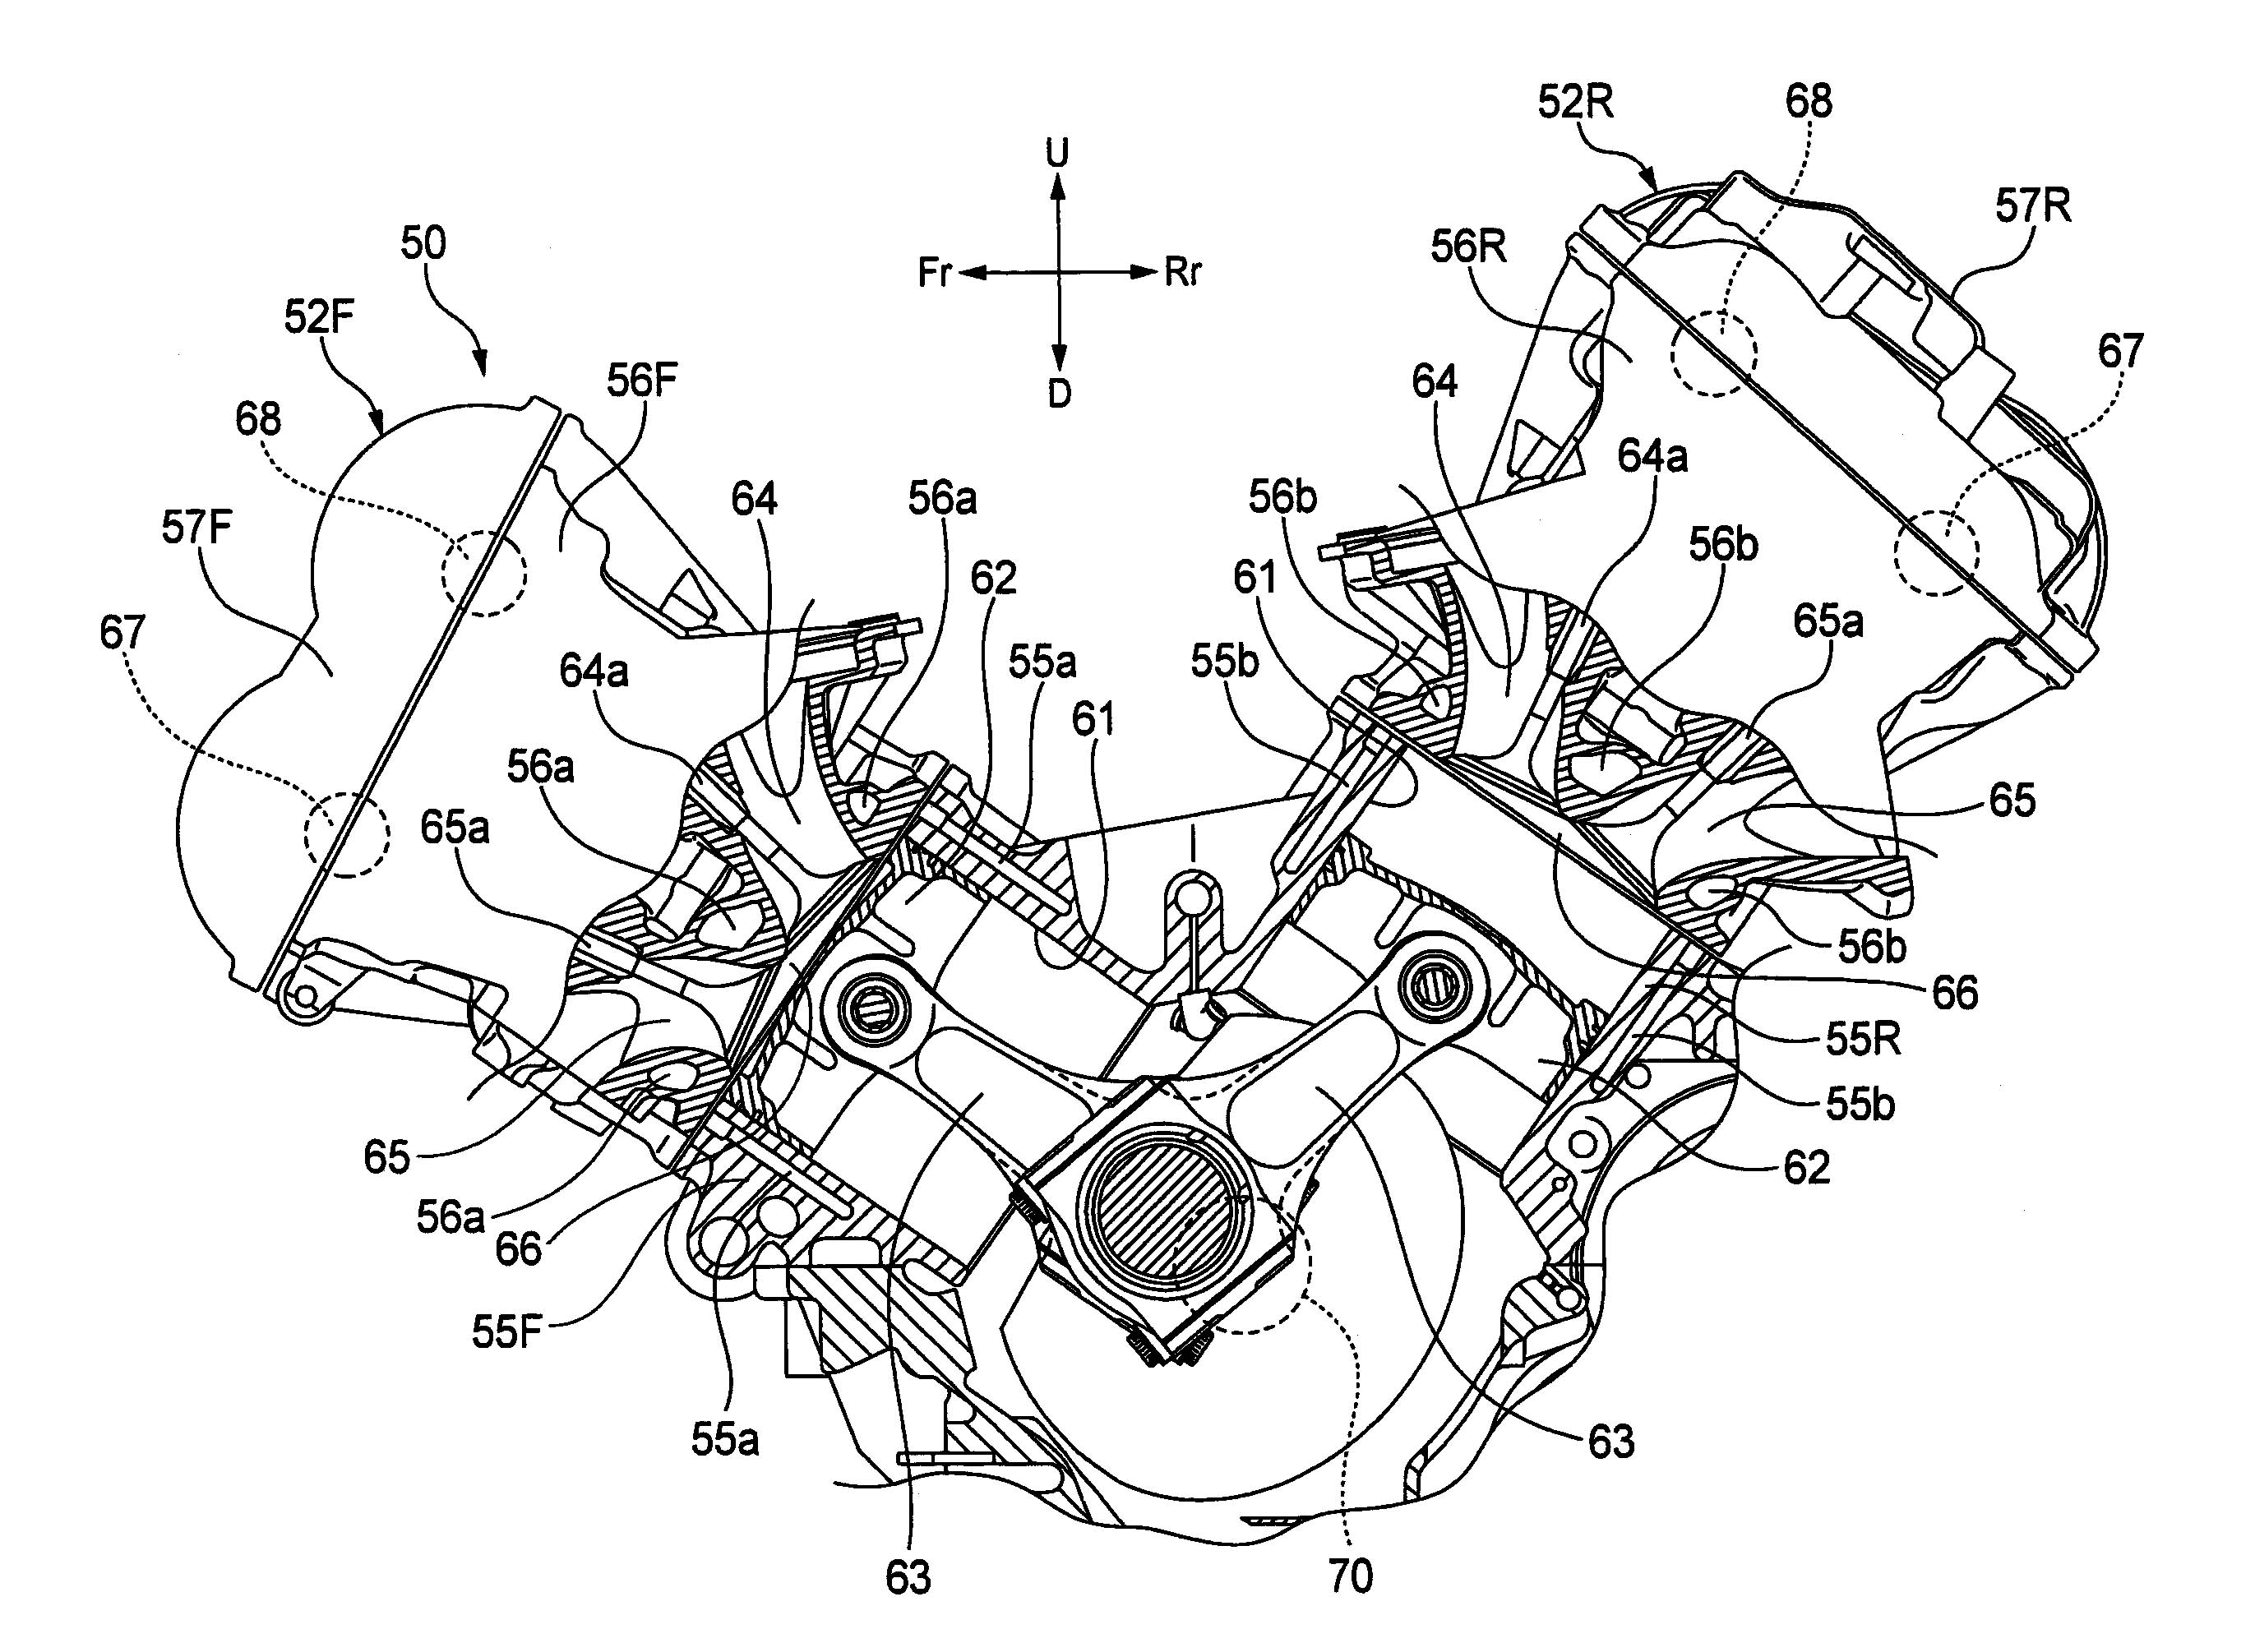 Engine Parts Drawing At Free For Personal Use 2014 Ford Focus Diagram 2743x2010 Honda V4 Superbike Outed In Patent Photos